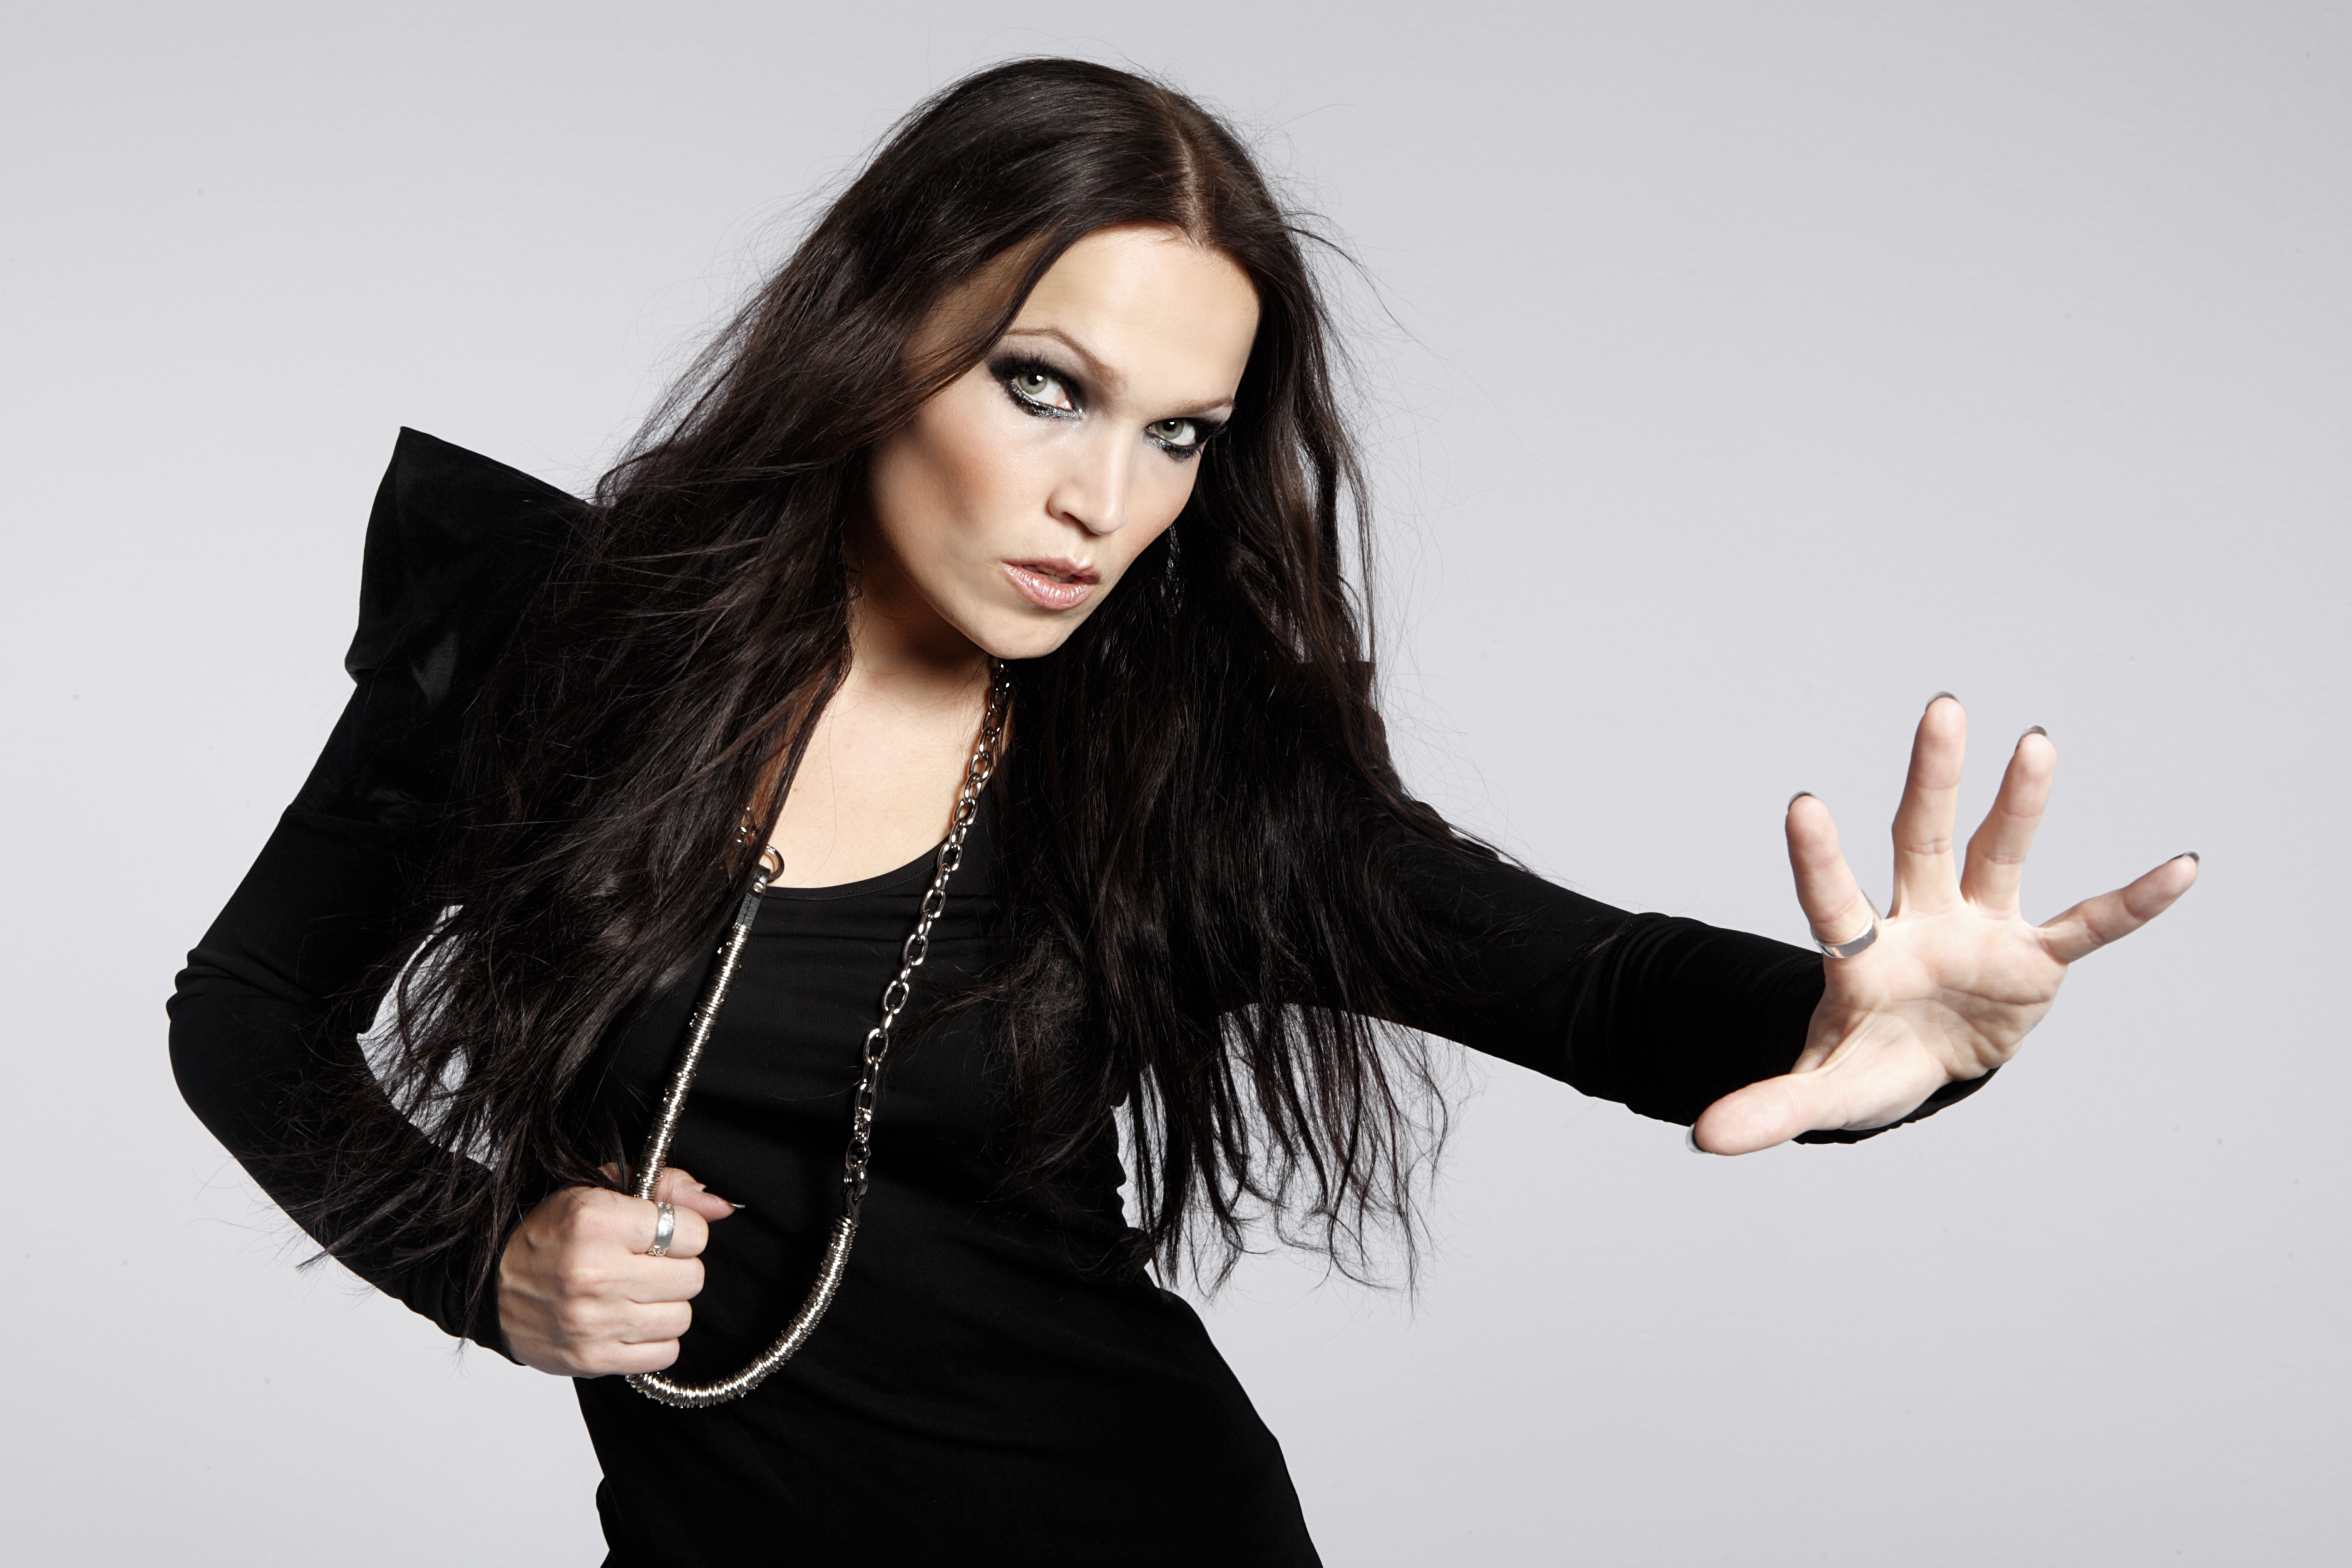 Tarja High Quality Background on Wallpapers Vista